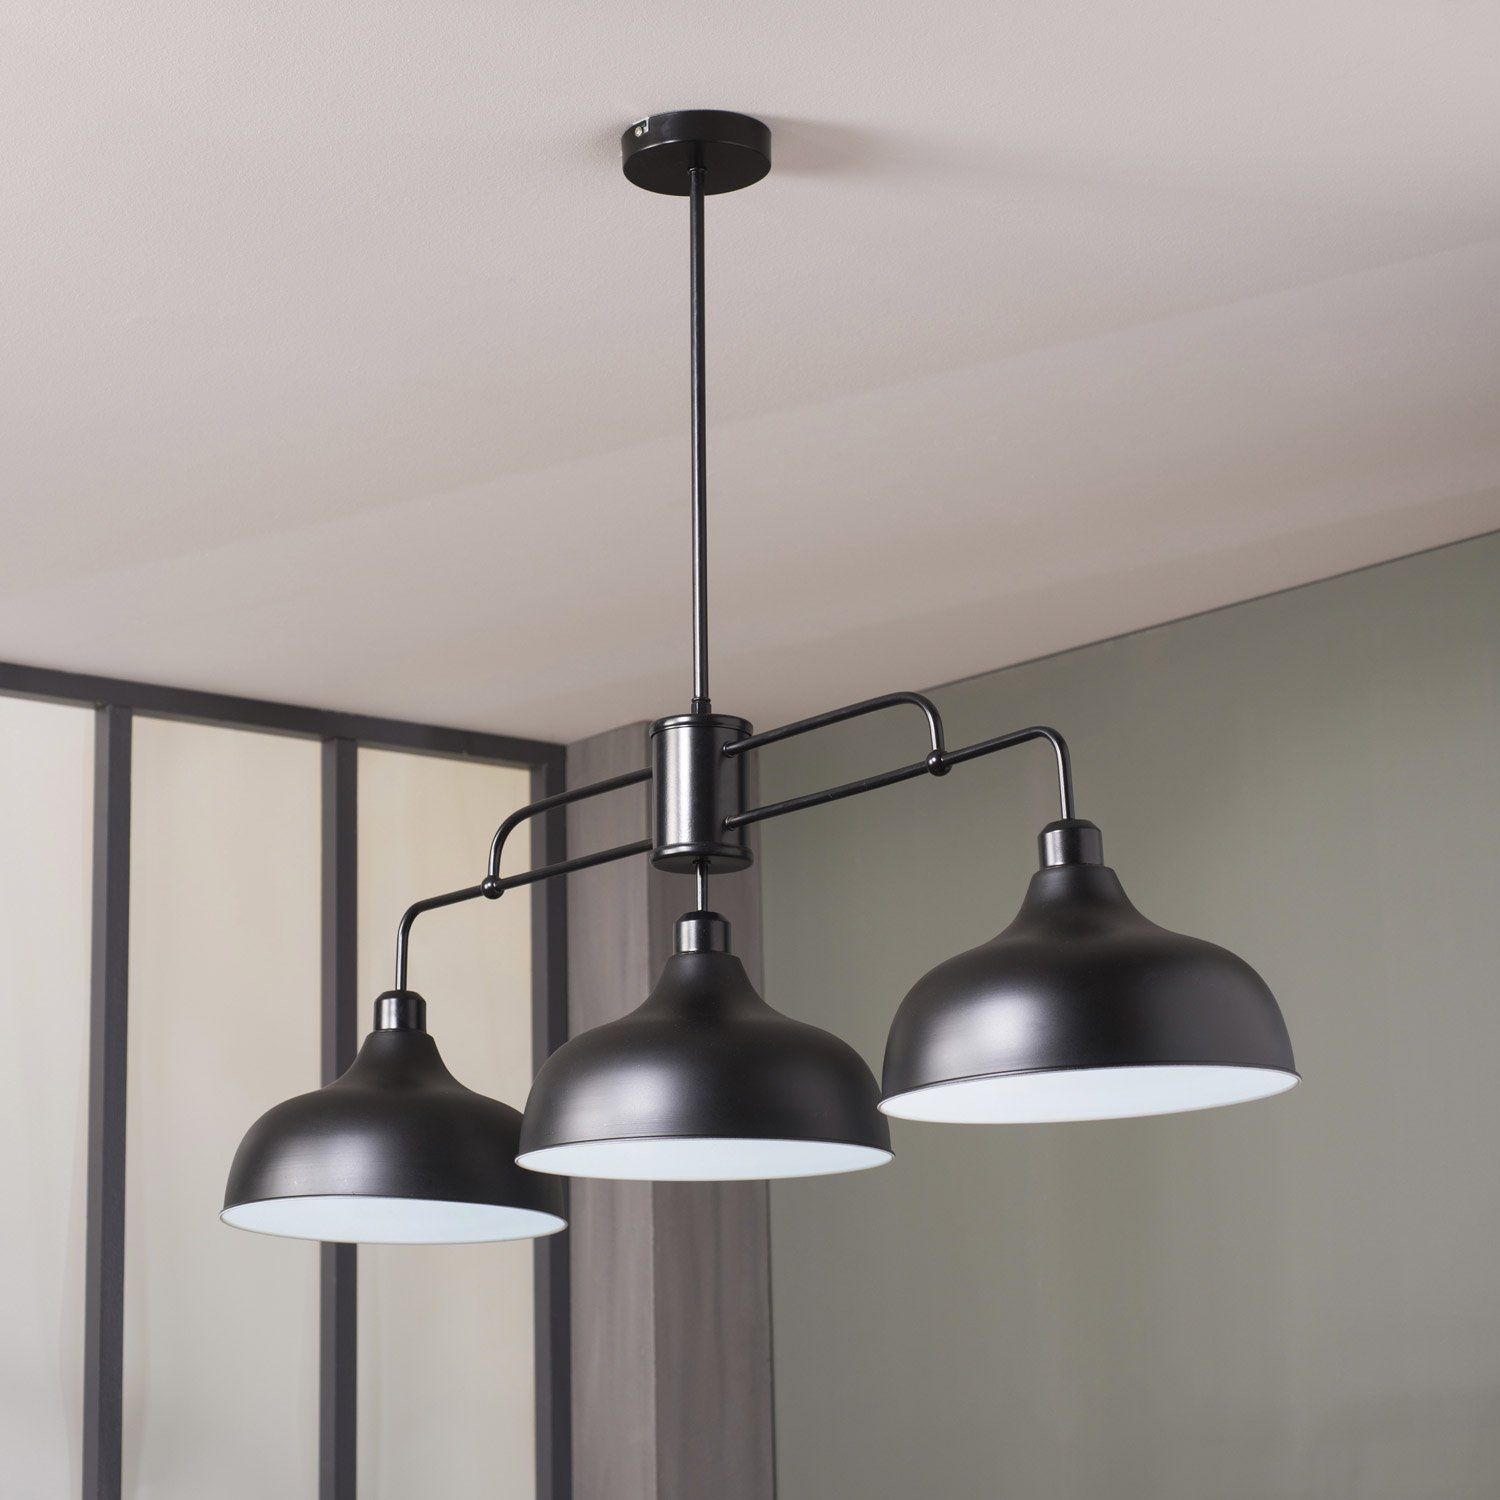 Plafonnier et suspension chez spot luminaire design - Suspension pour salon ...